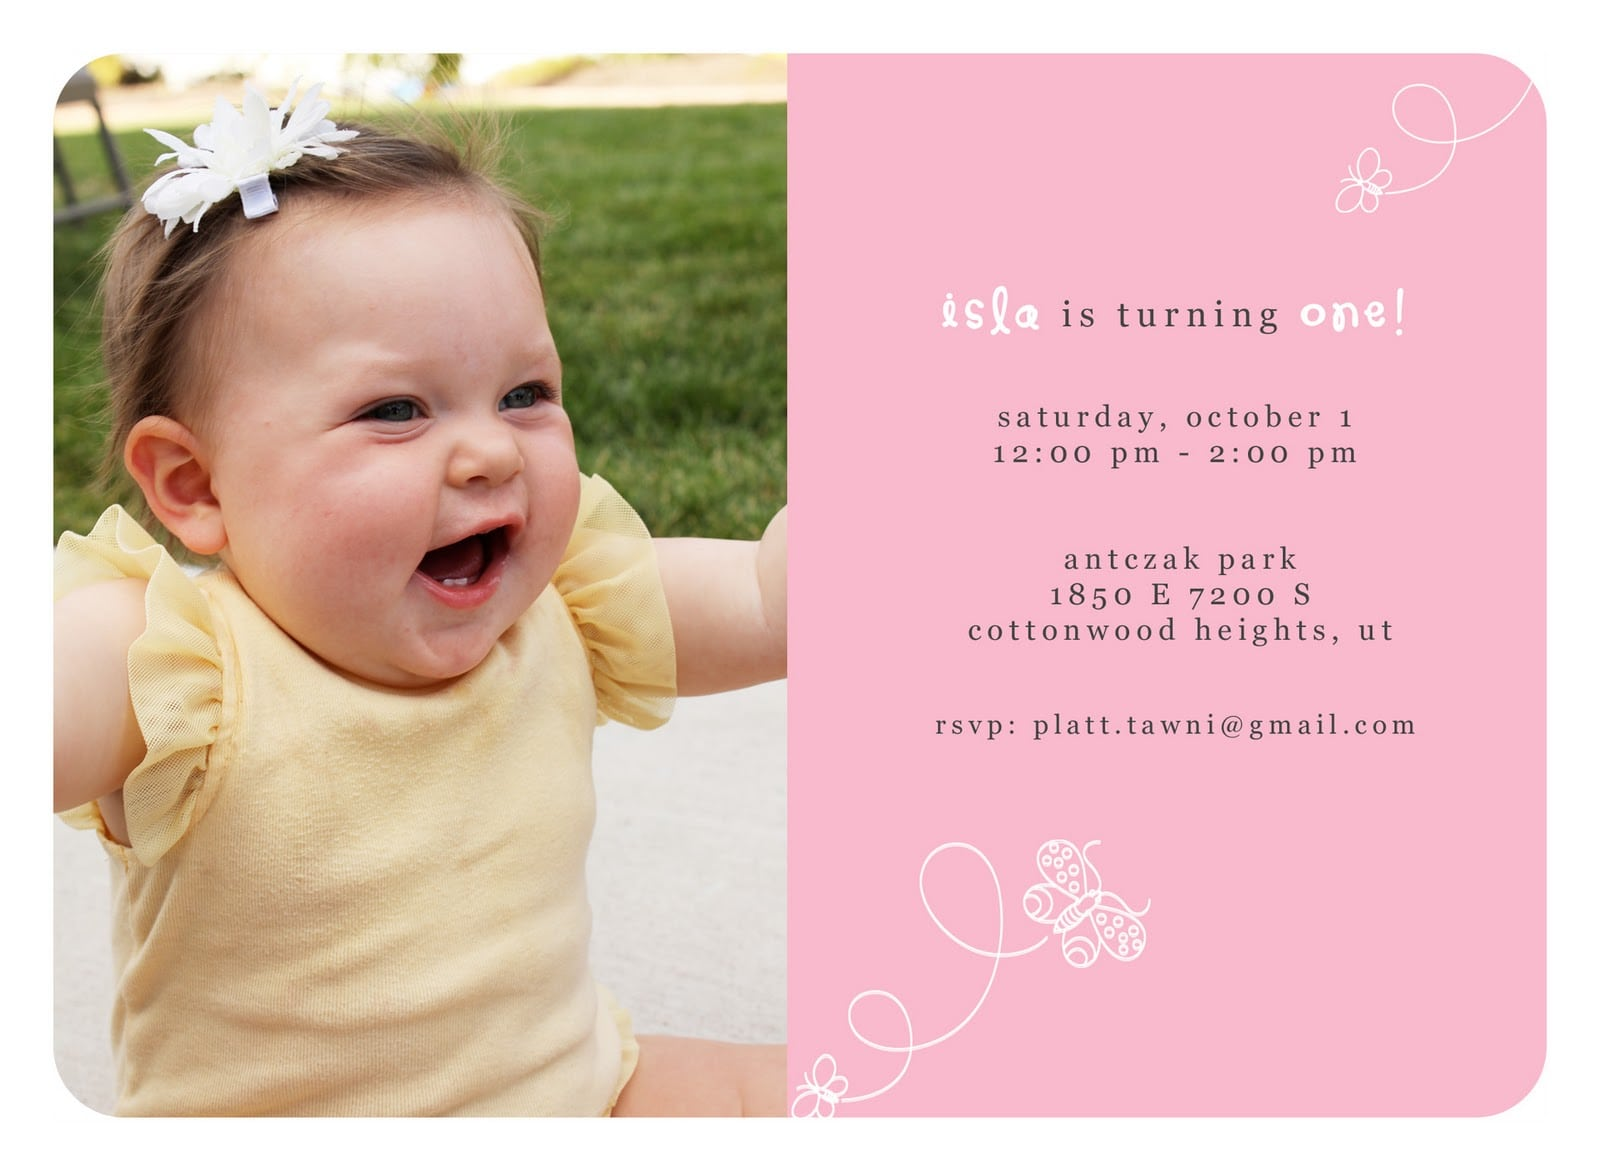 1st birthday invitation template etamemibawa 1st birthday invitation template bookmarktalkfo Image collections